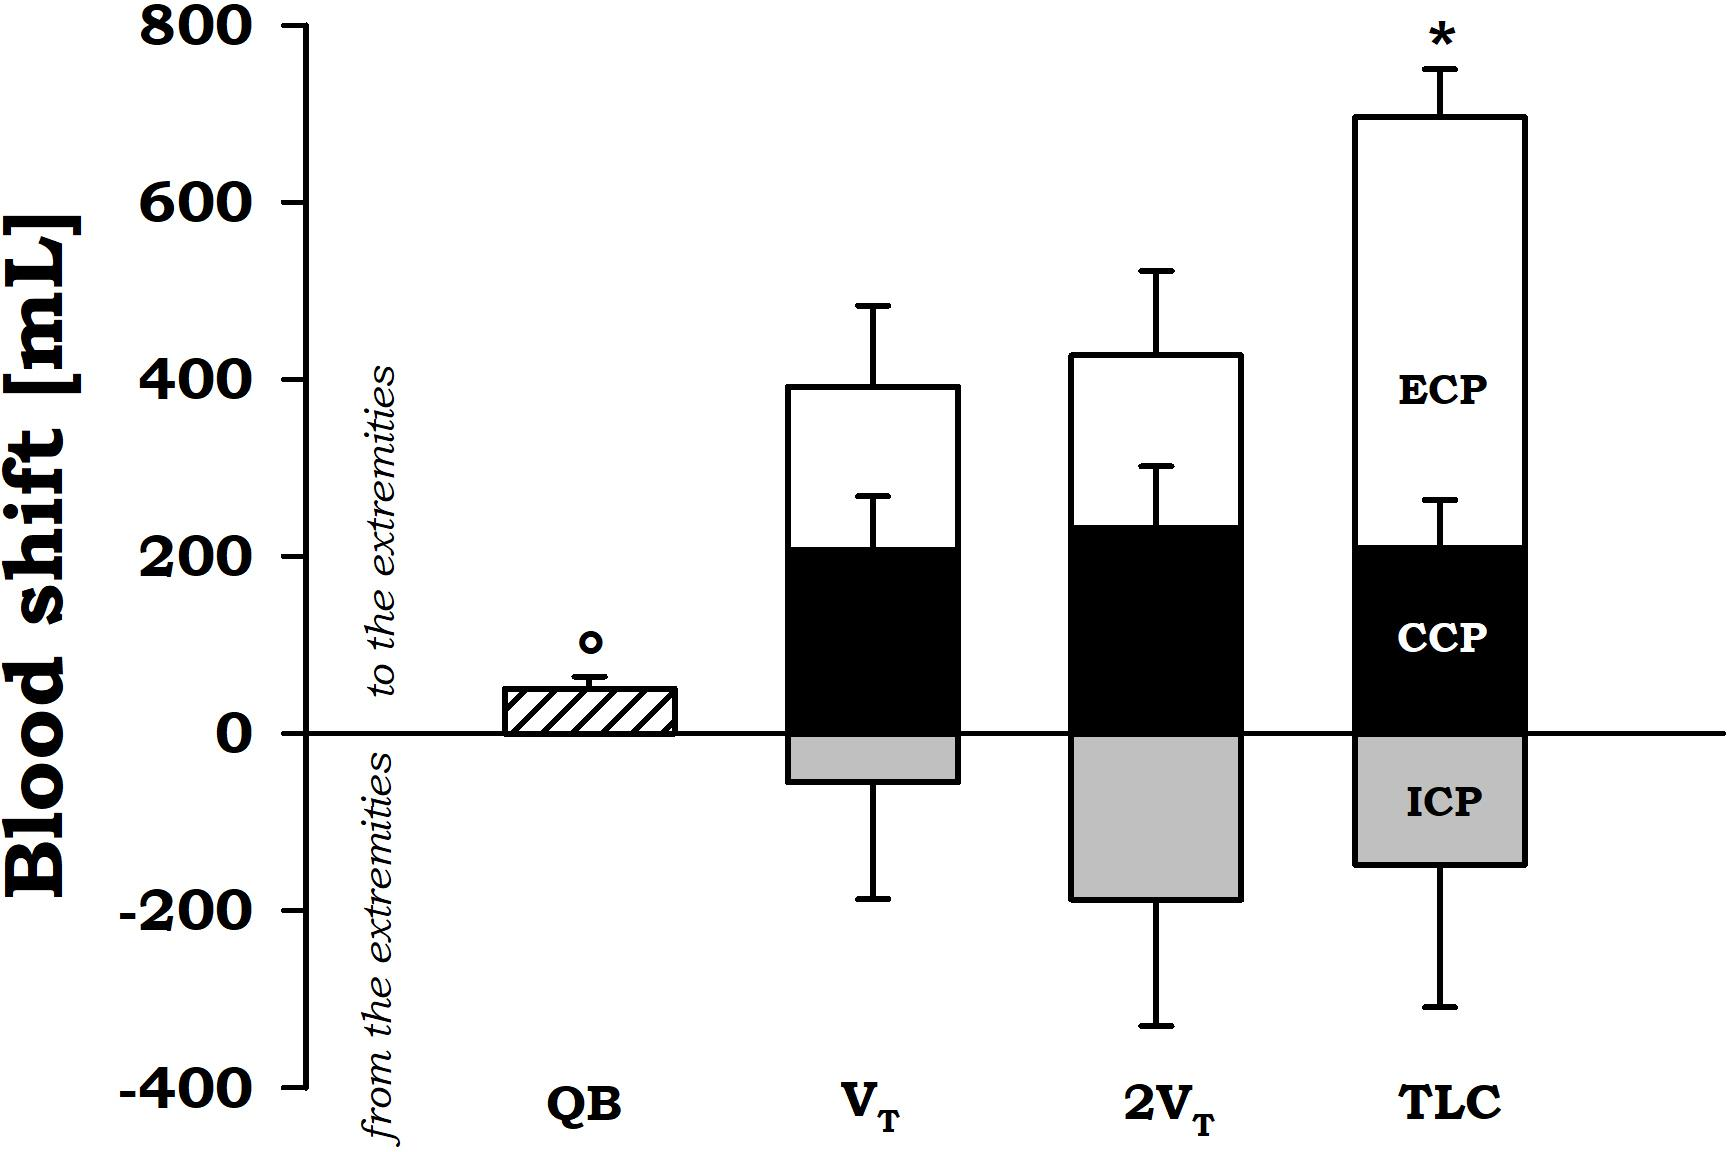 Frontiers | Blood Shift During Cough: Negligible or Significant